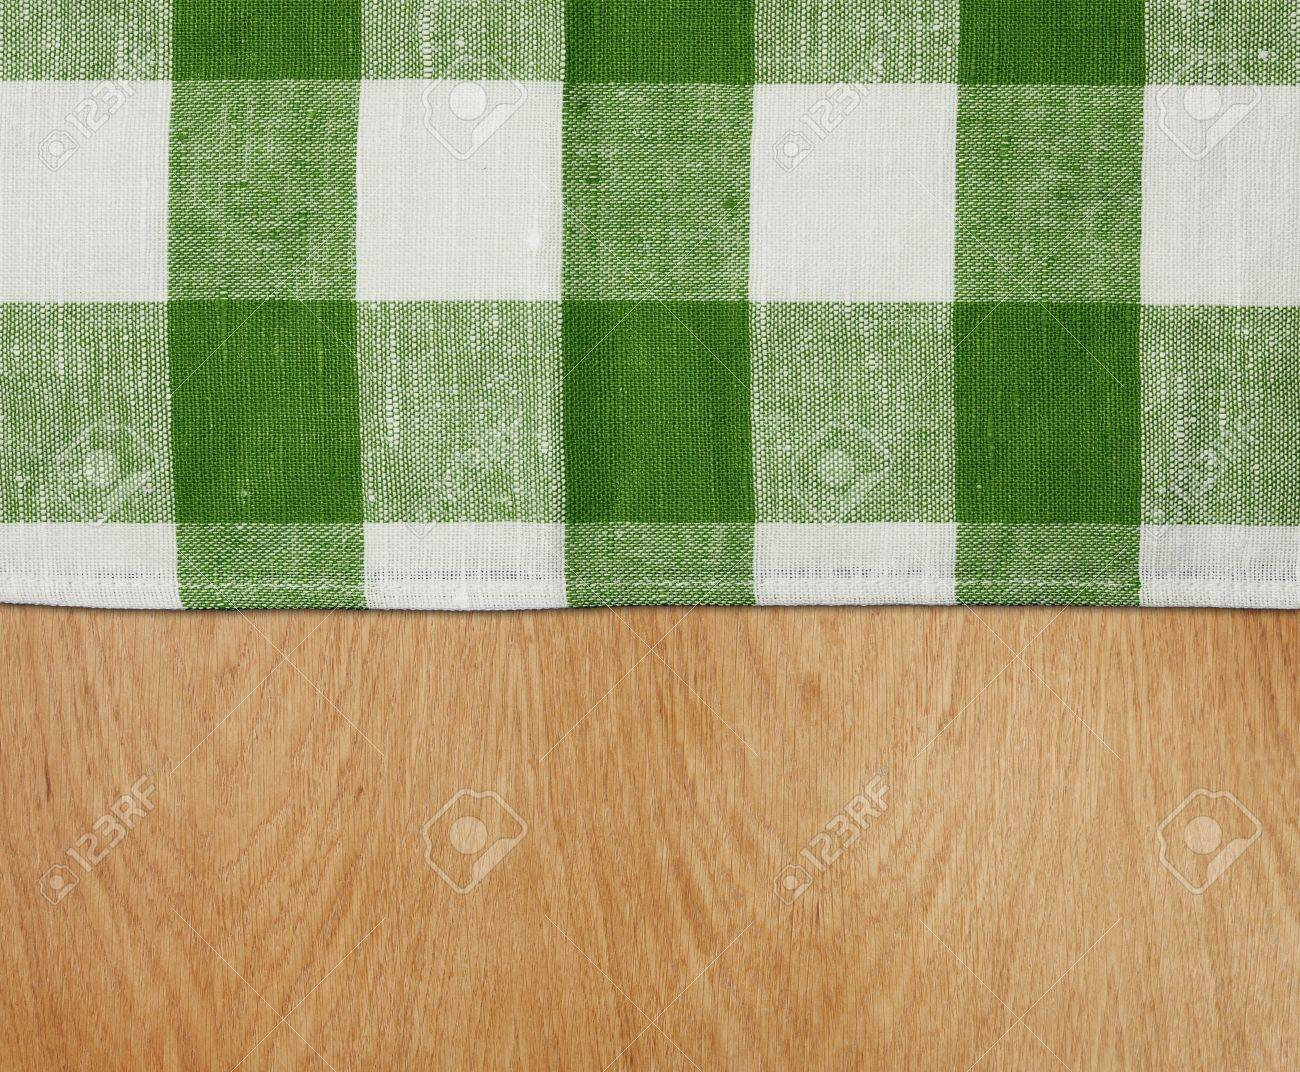 photo wooden kitchen table with green gingham tablecloth wooden kitchen table Stock Photo wooden kitchen table with green gingham tablecloth